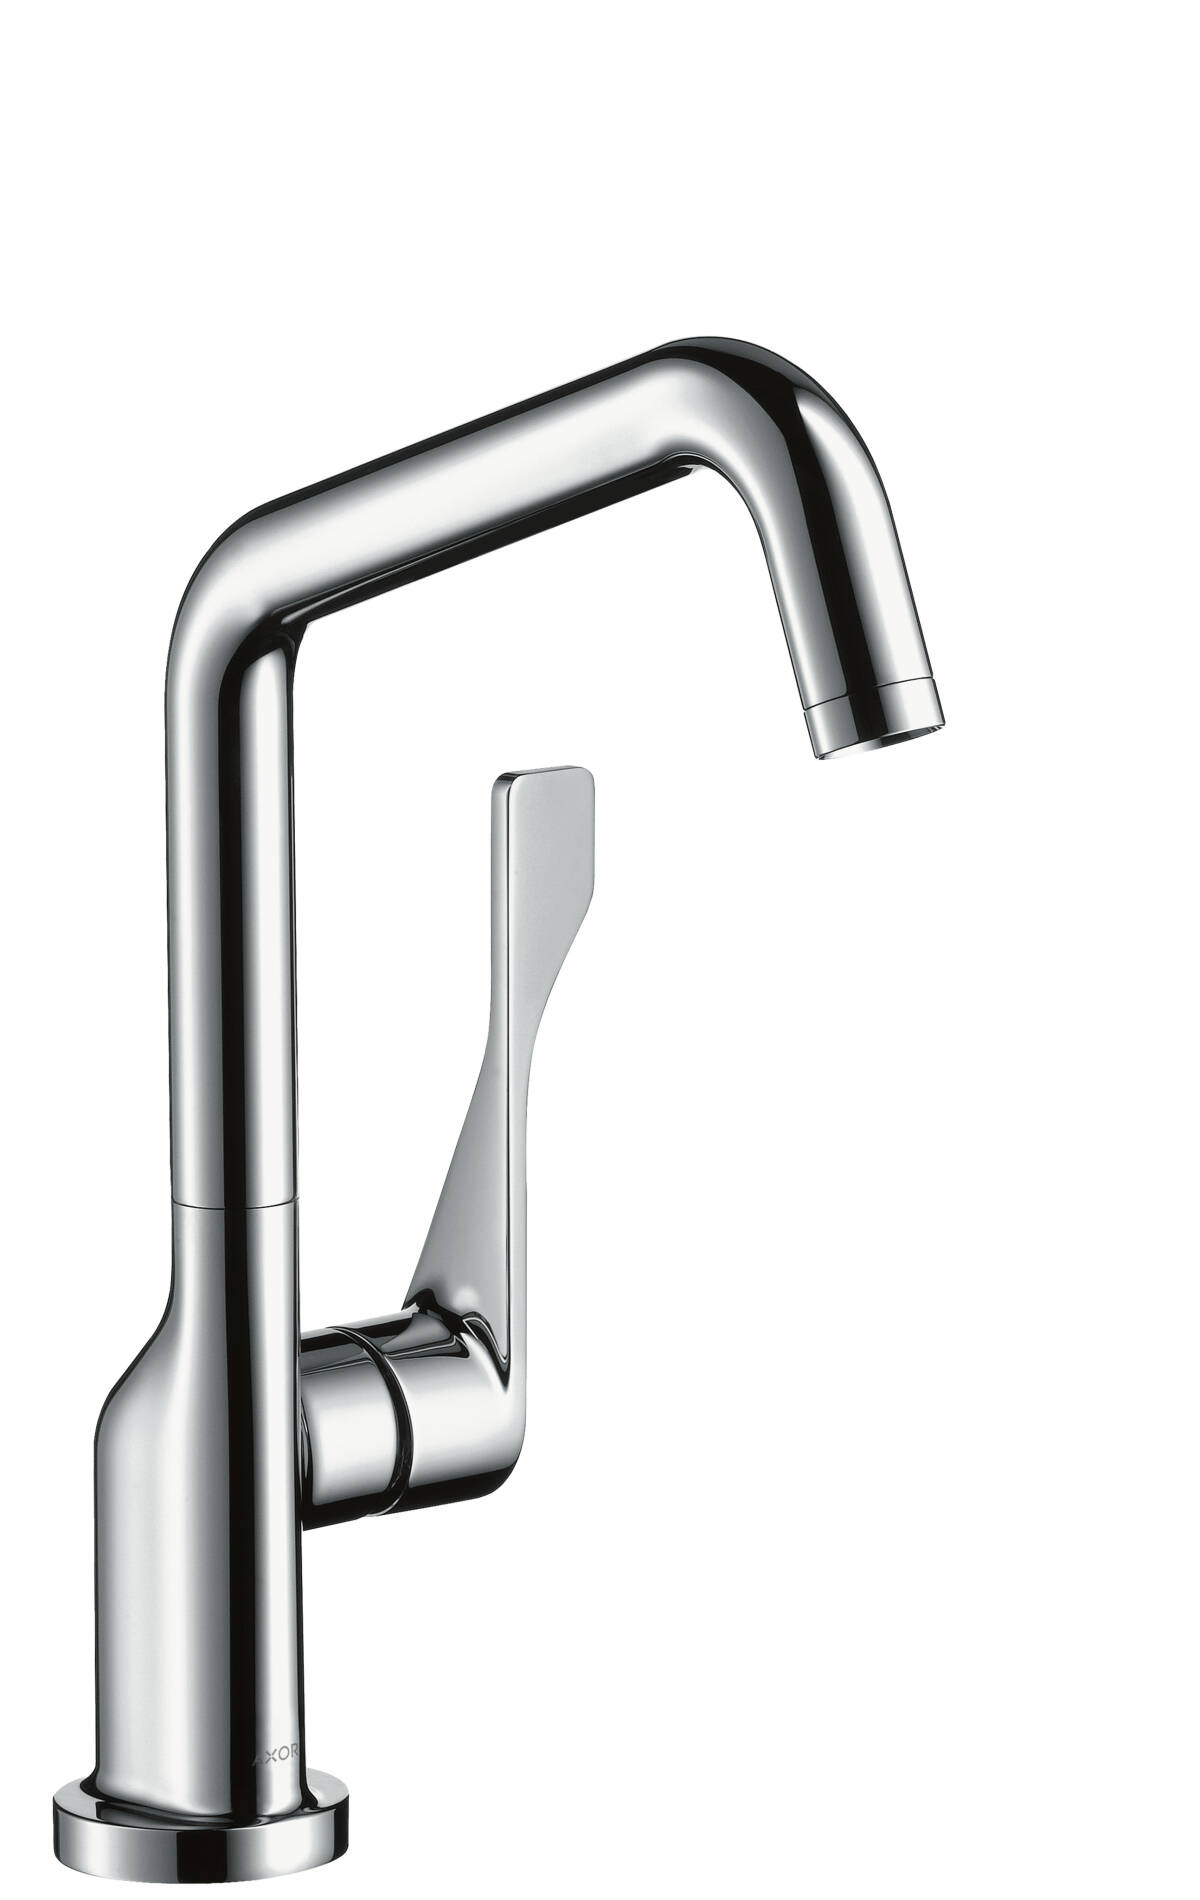 Single lever kitchen mixer 260 with swivel spout, Chrome, 39850000